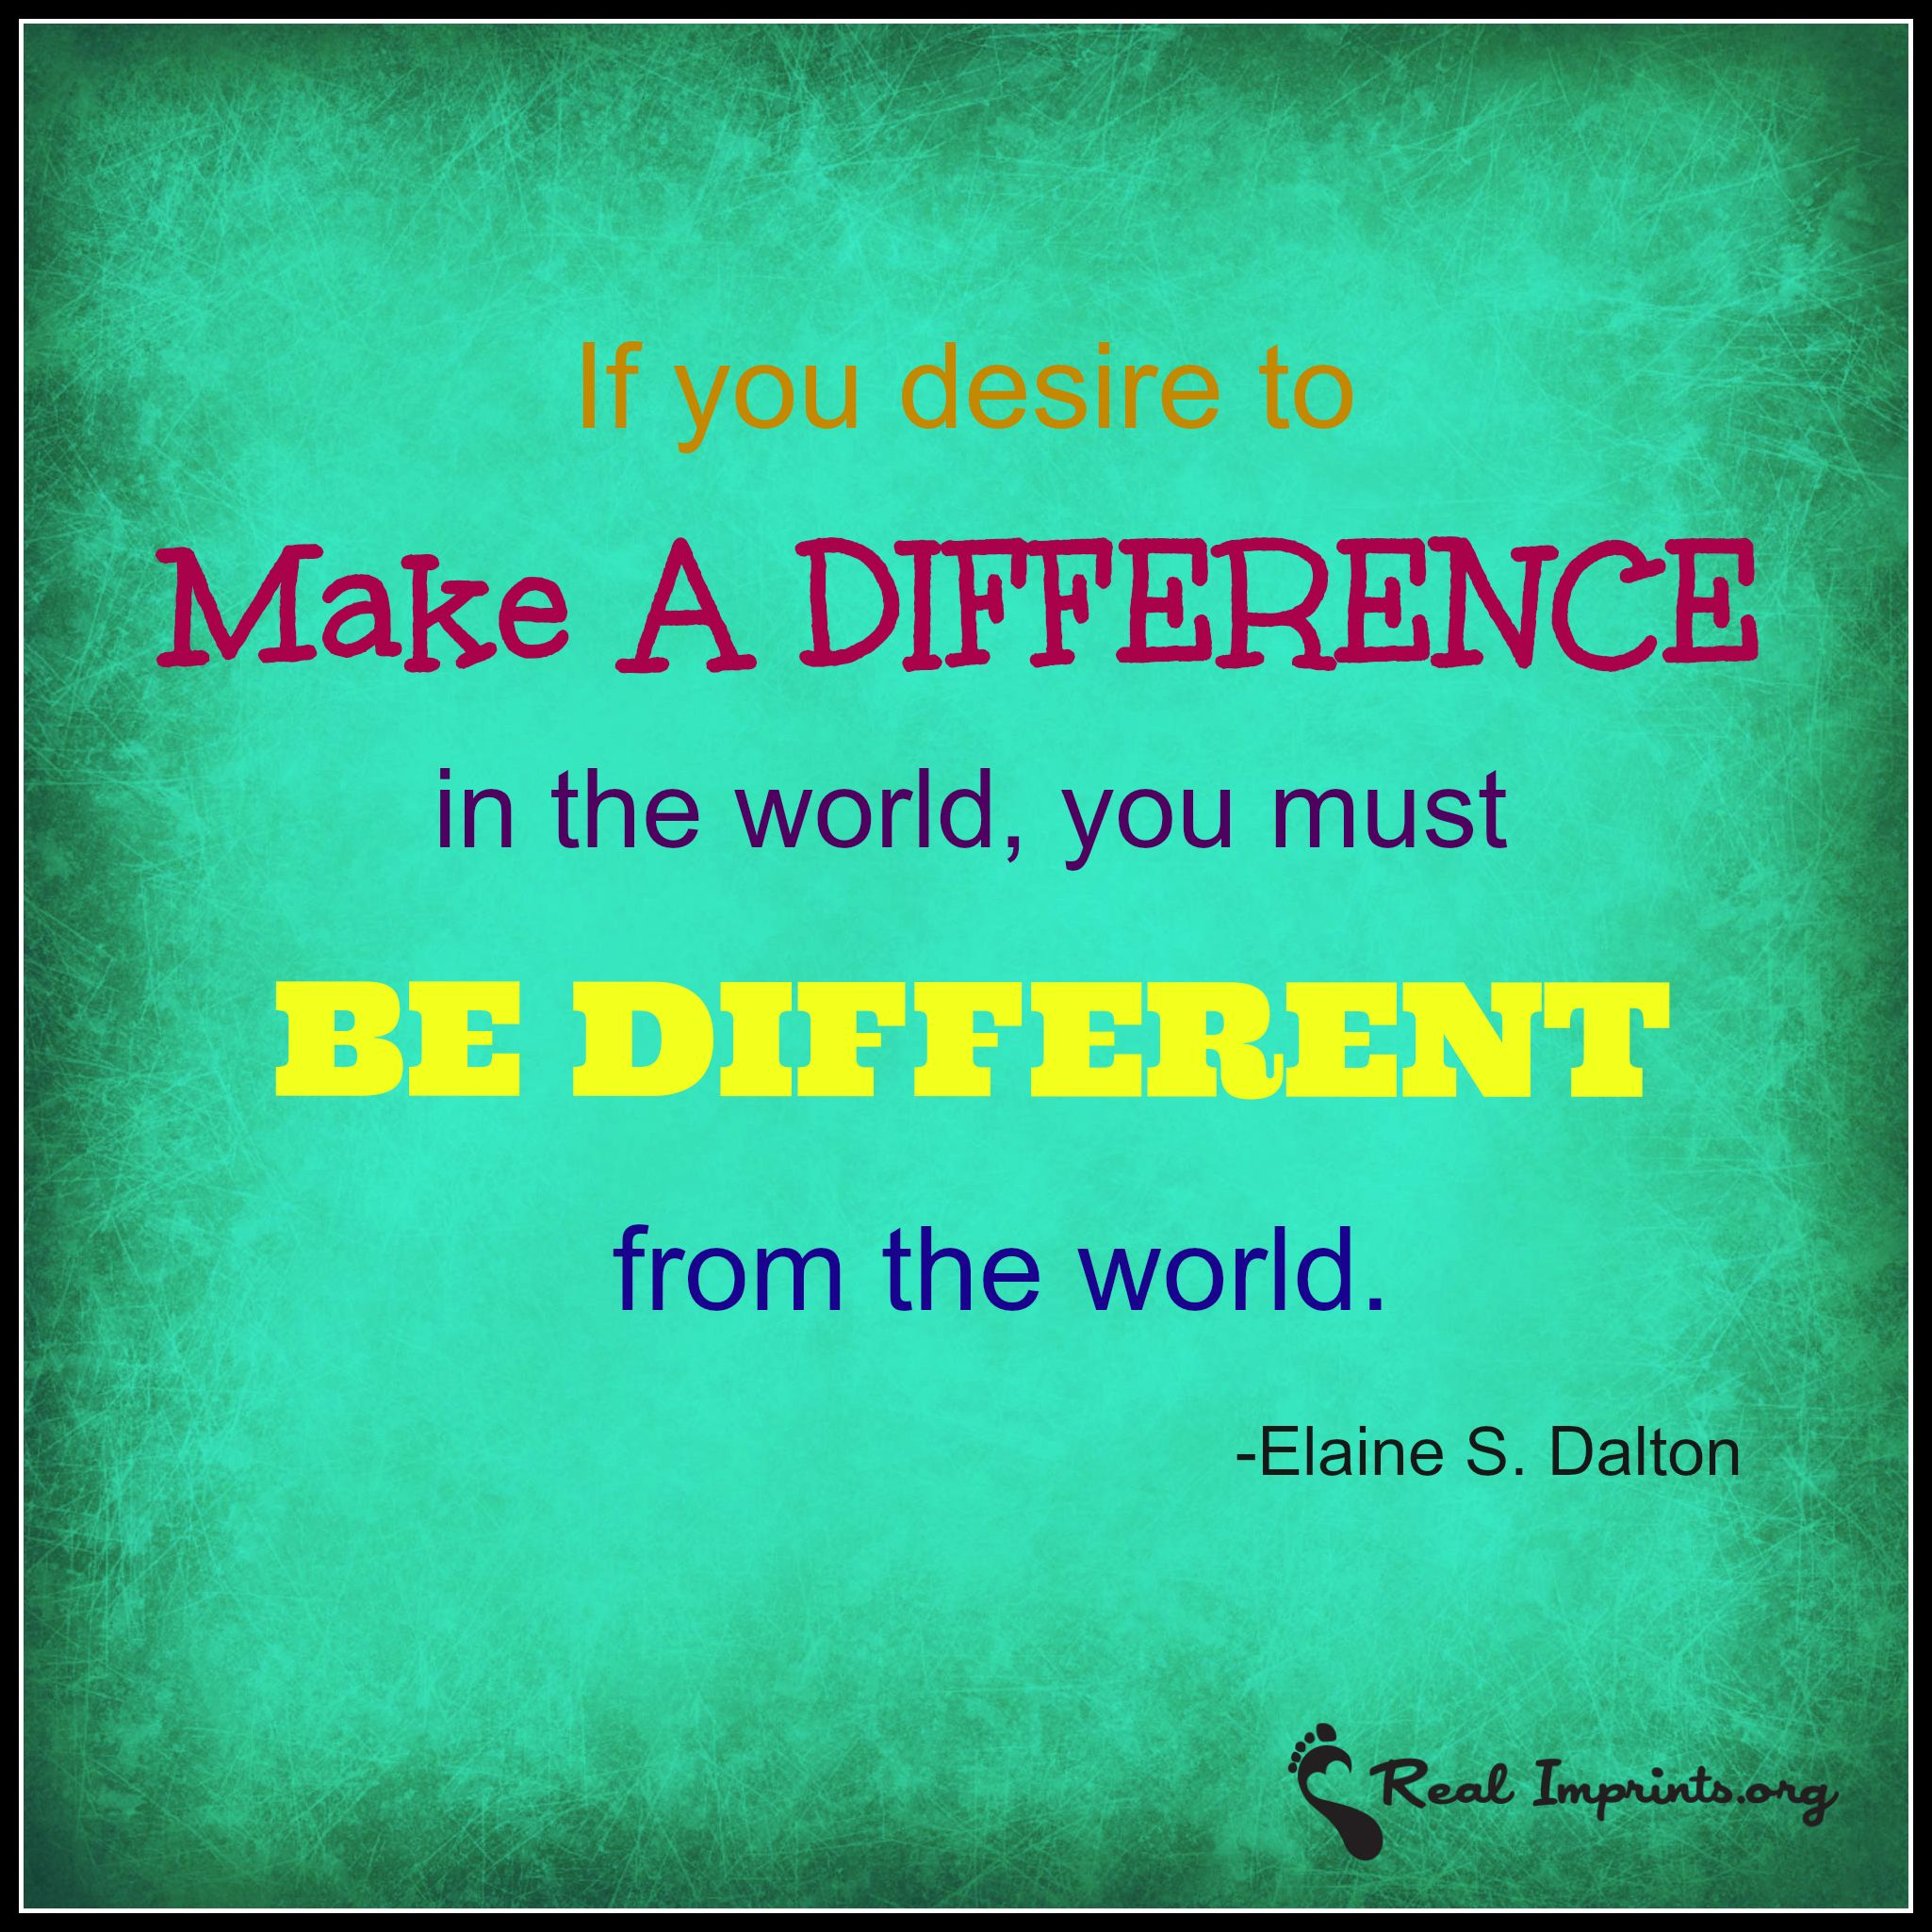 Making A Difference Quotes Be Different  Make A Difference  Quotes  Pinterest